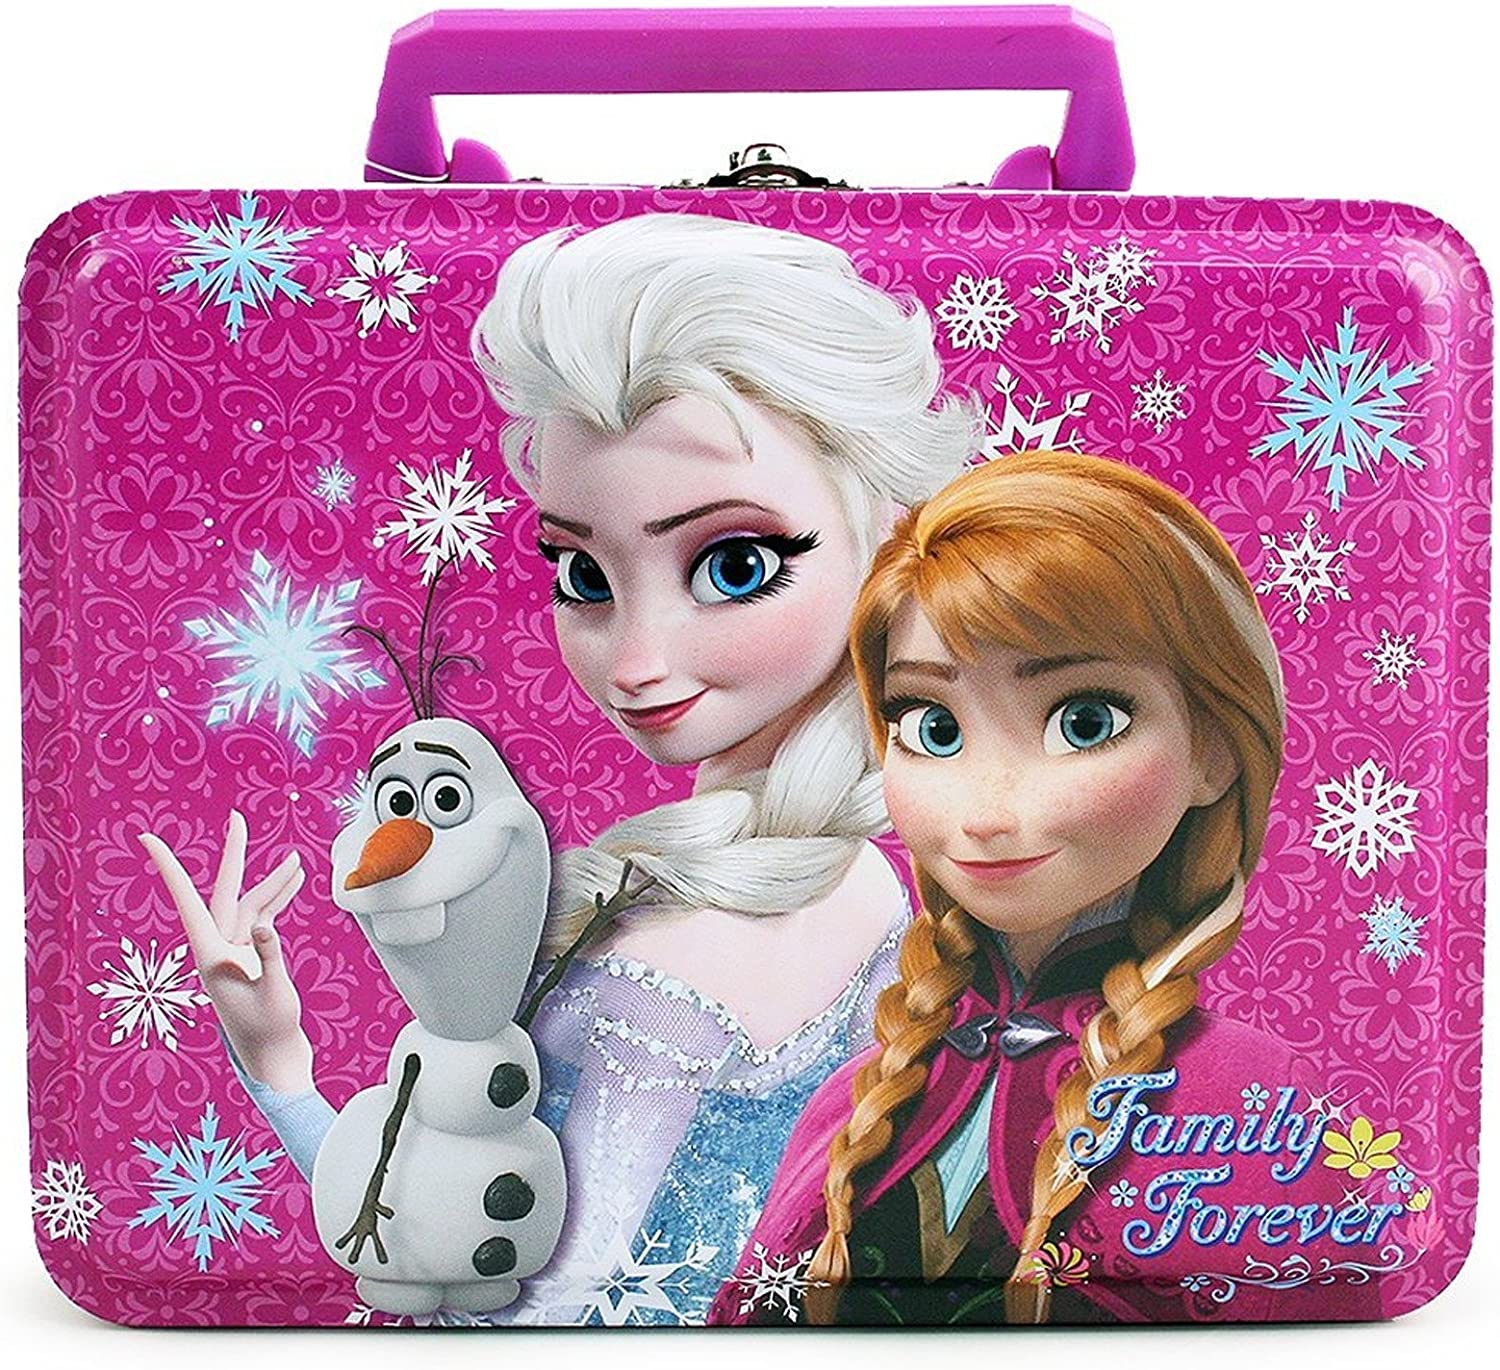 Disney Frozen Elsa, Anna and Olaf Deluxe Purple Tin Lunch Box 7  X 5.5  X 3